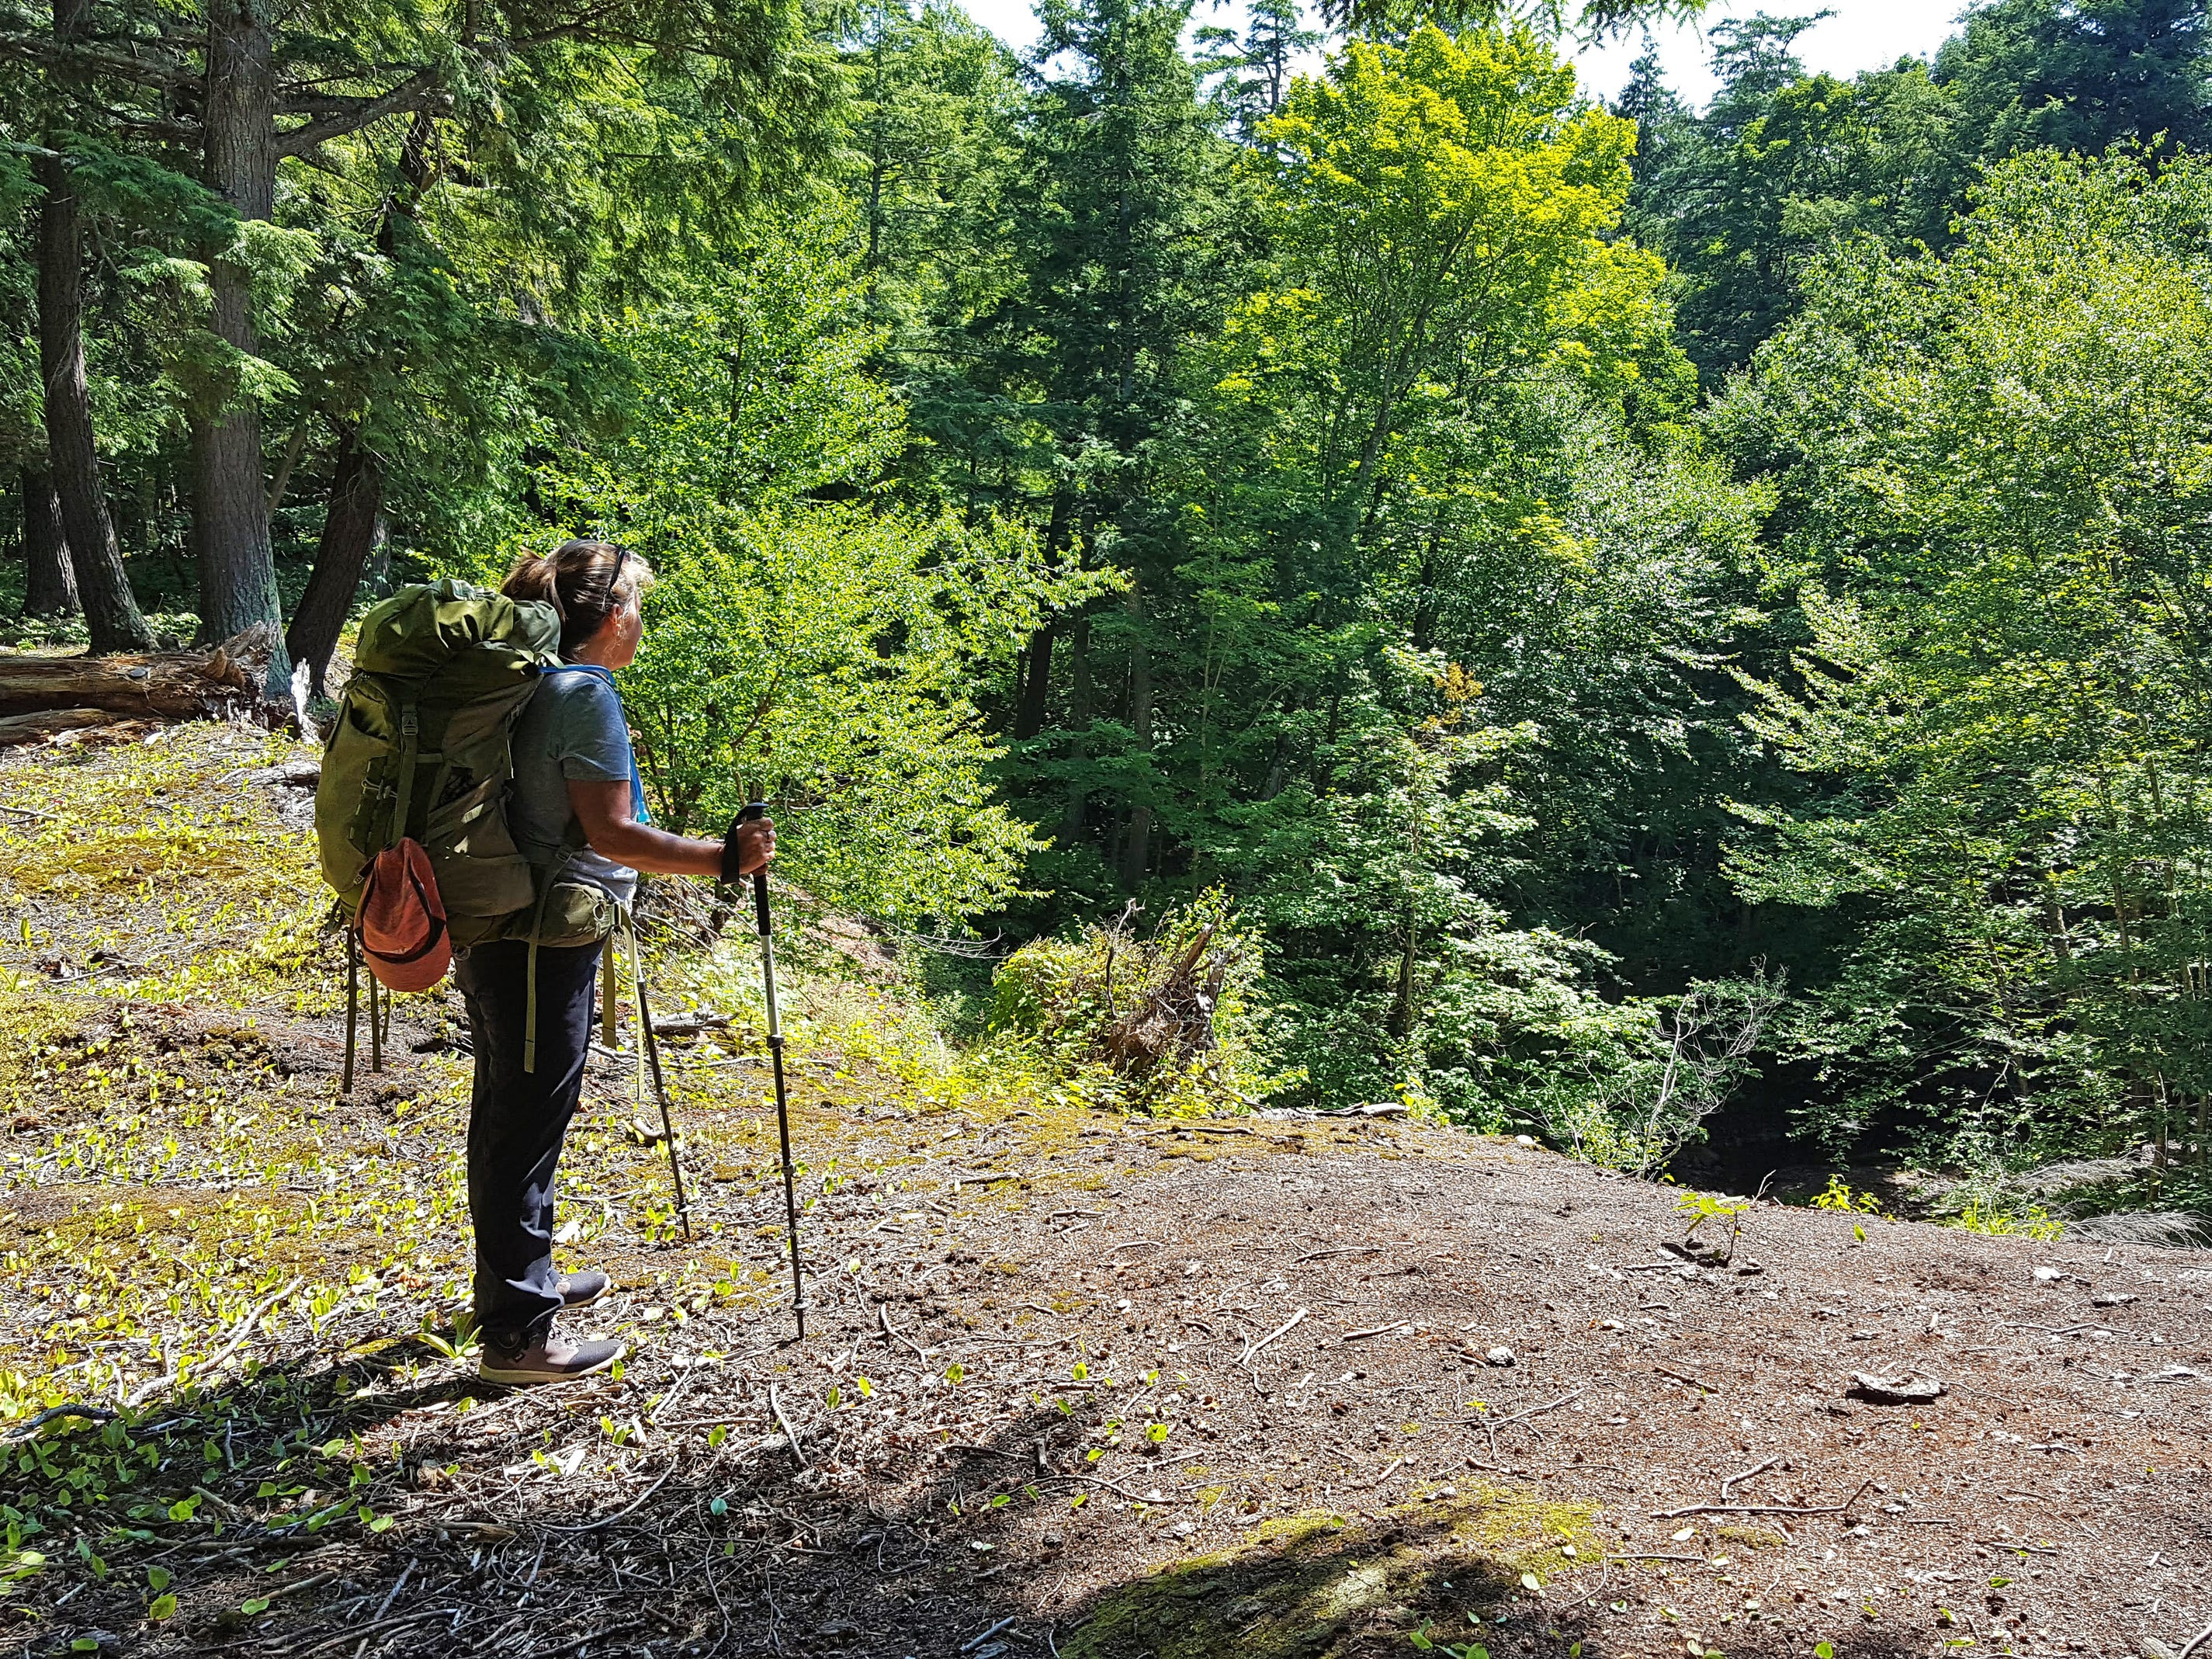 Carol Lewis looks over a ravine while backpacking on the Lake Superior Trail in the Porcupine Mountains Wilderness State Park in Michigan's Upper Peninsula.